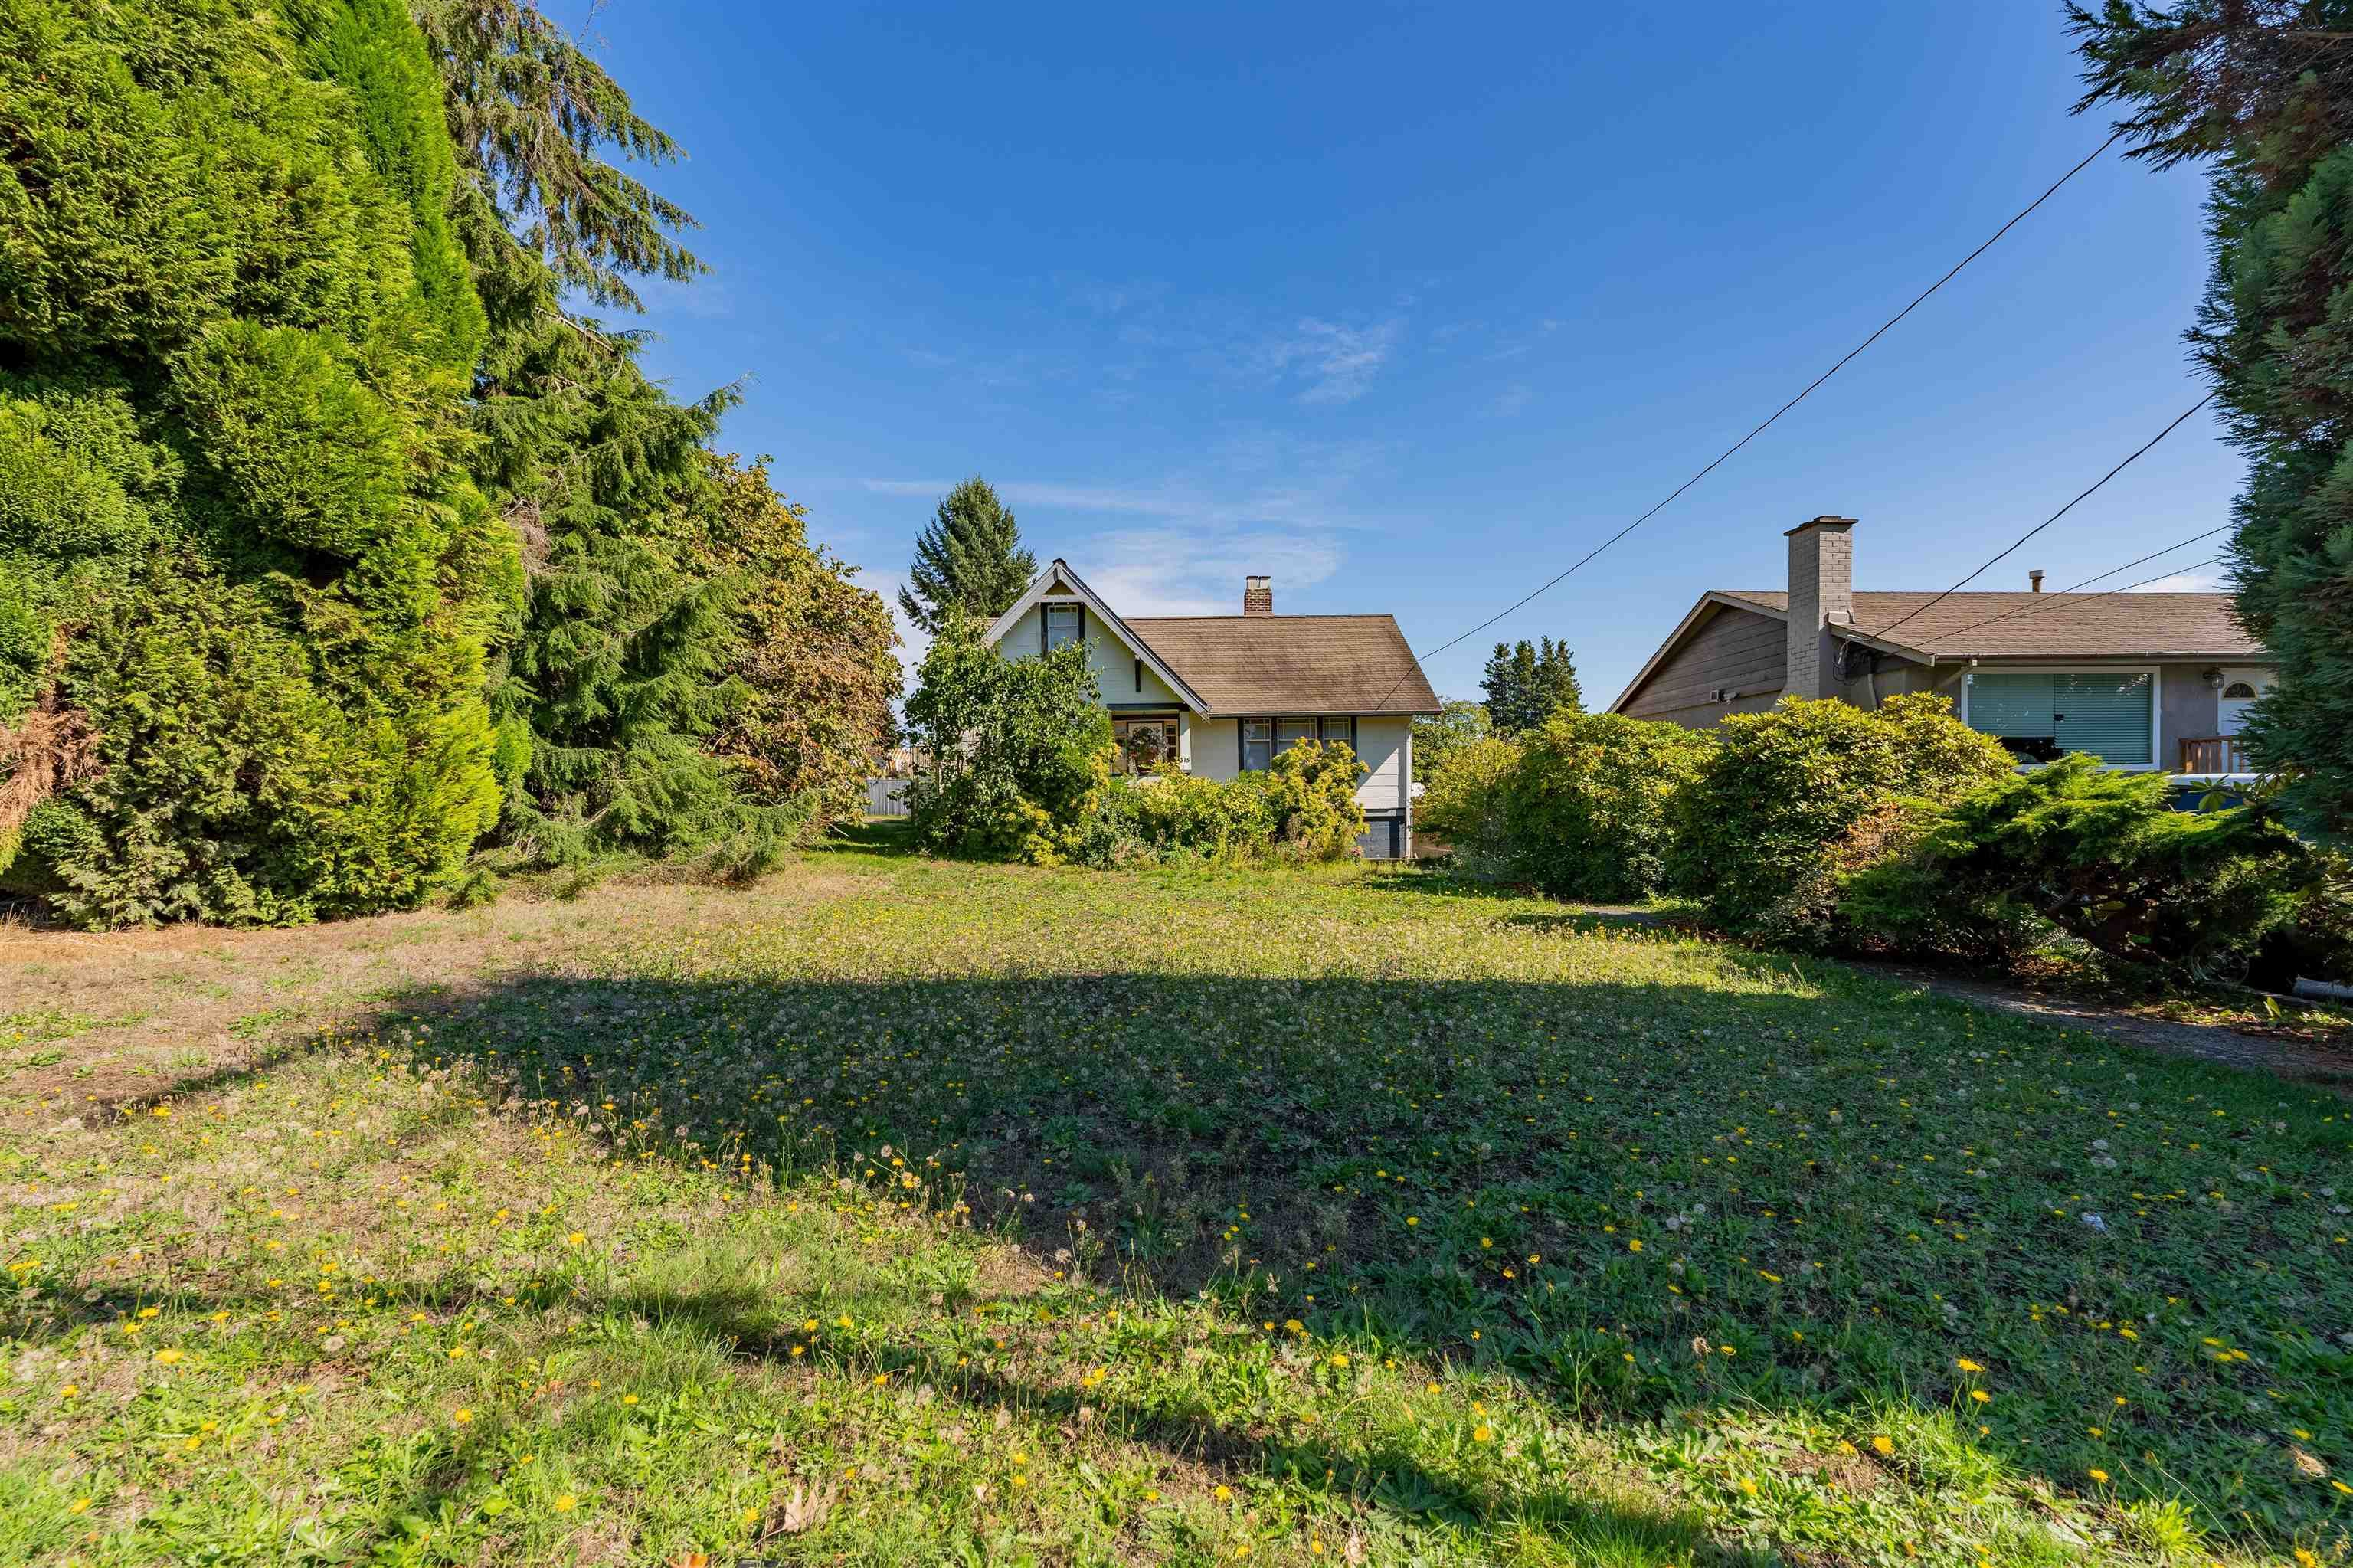 Main Photo: 375 BLUE MOUNTAIN Street in Coquitlam: Maillardville House for sale : MLS®# R2622191